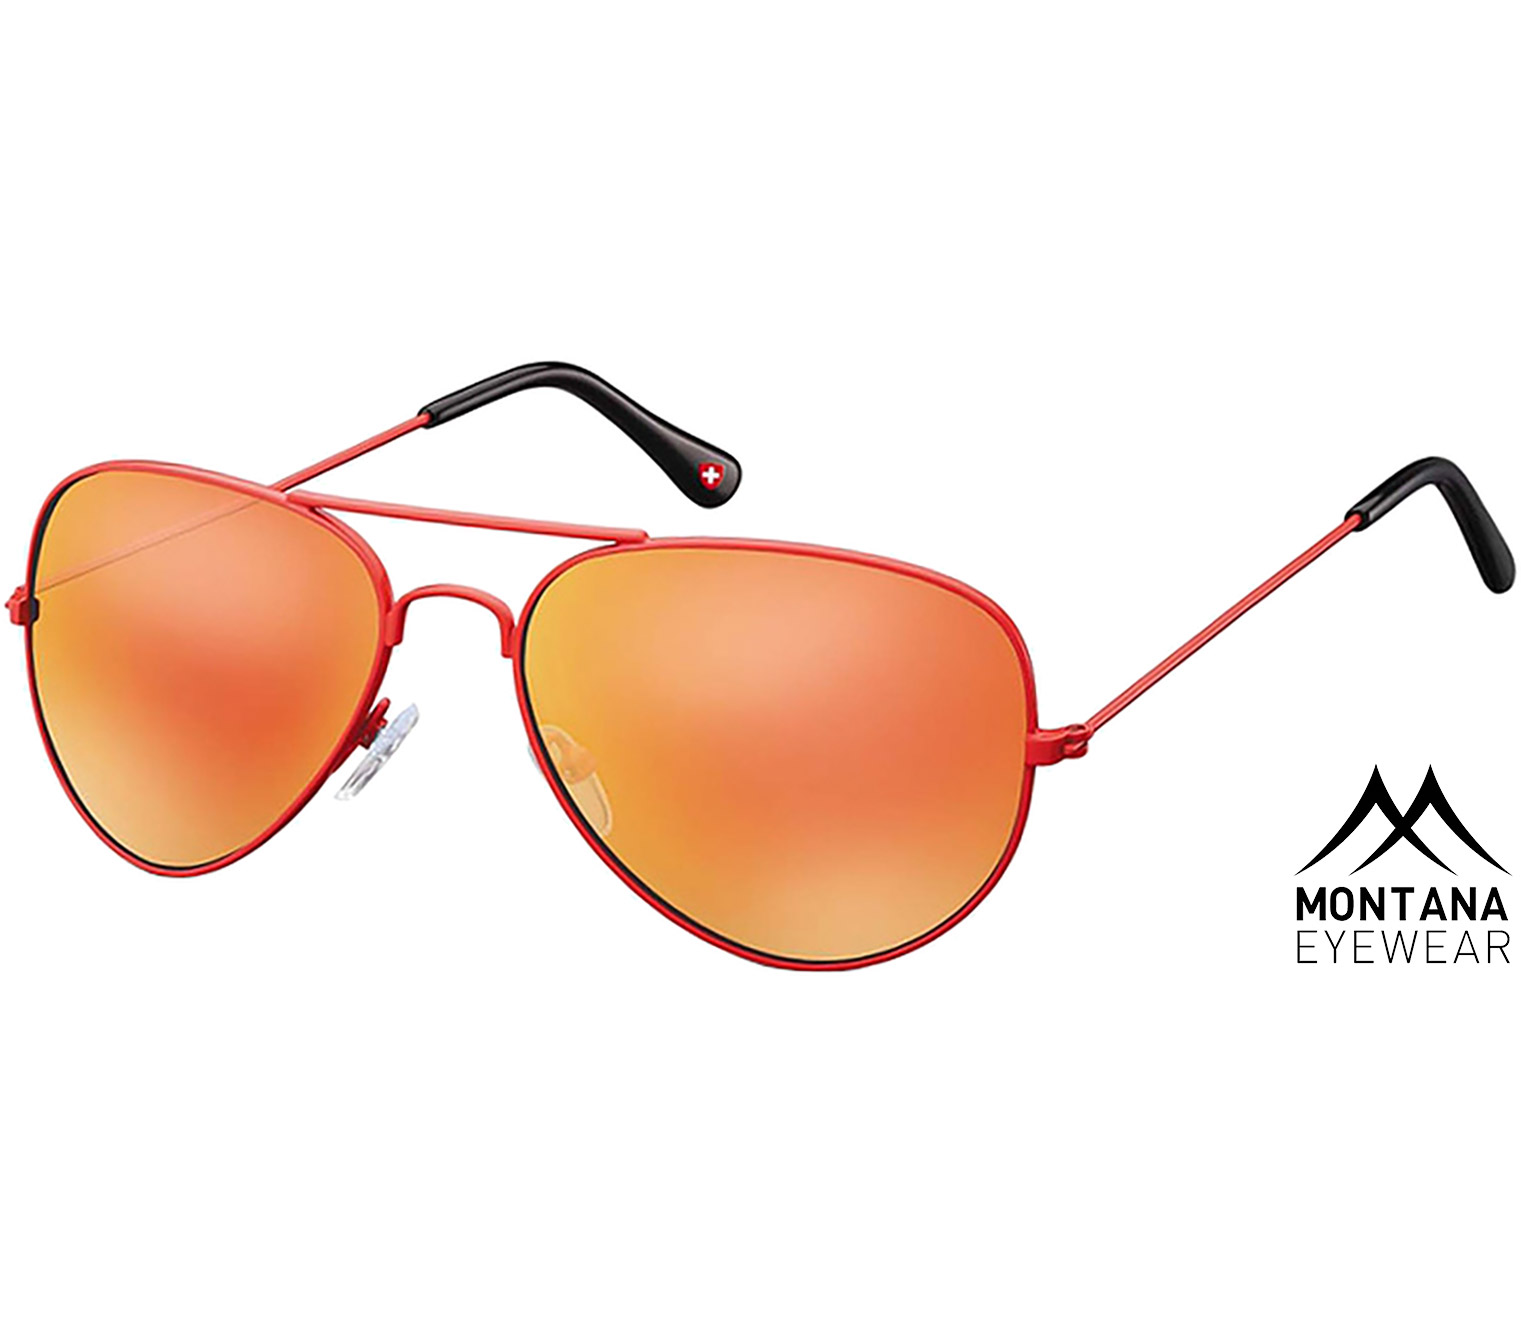 Main Image (Angle) - Island (Red) Aviator Sunglasses